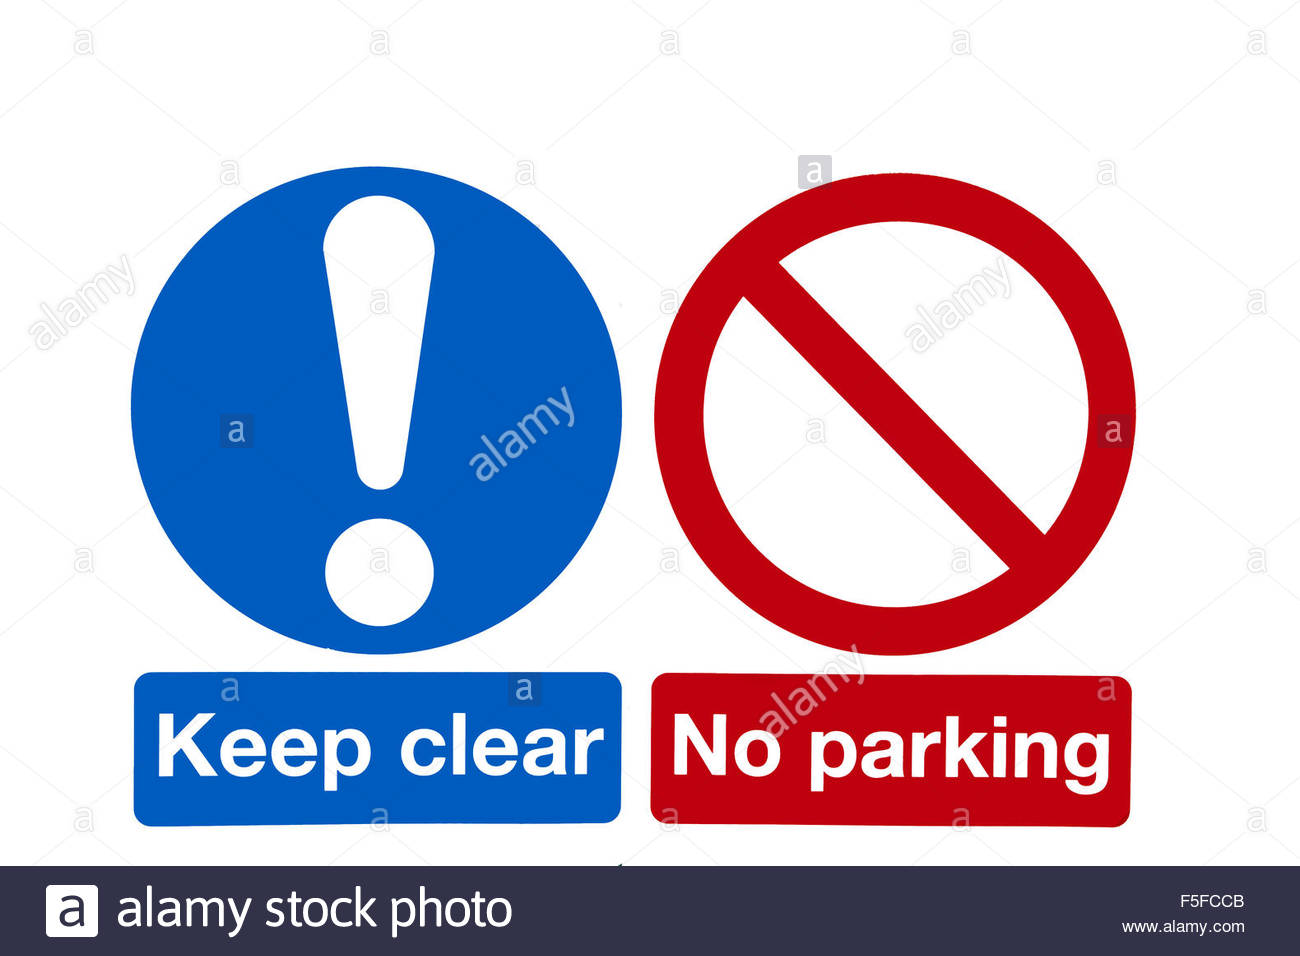 Cleaned up street signs, side by side: Keep clear and No Parking. Copy space - Stock Image